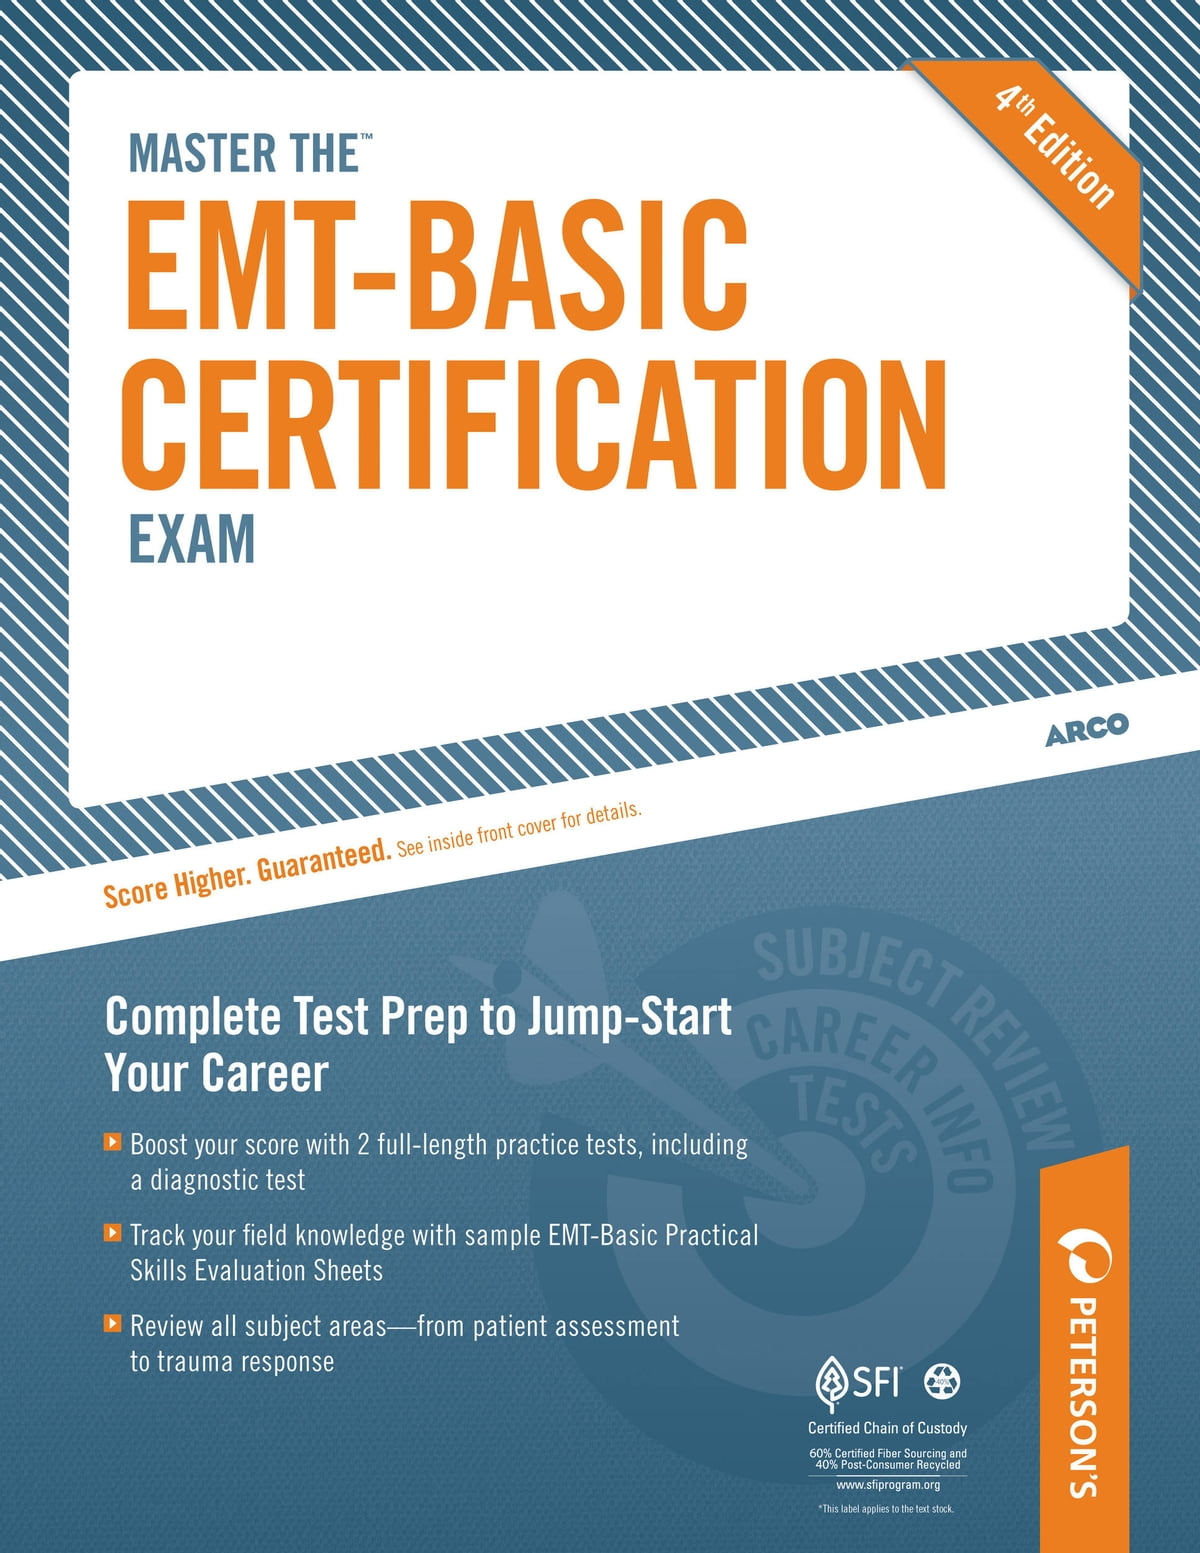 Master the EMT-Basic Certification Exam: All About the EMT eBook by  Peterson's - 9780768934519 | Rakuten Kobo